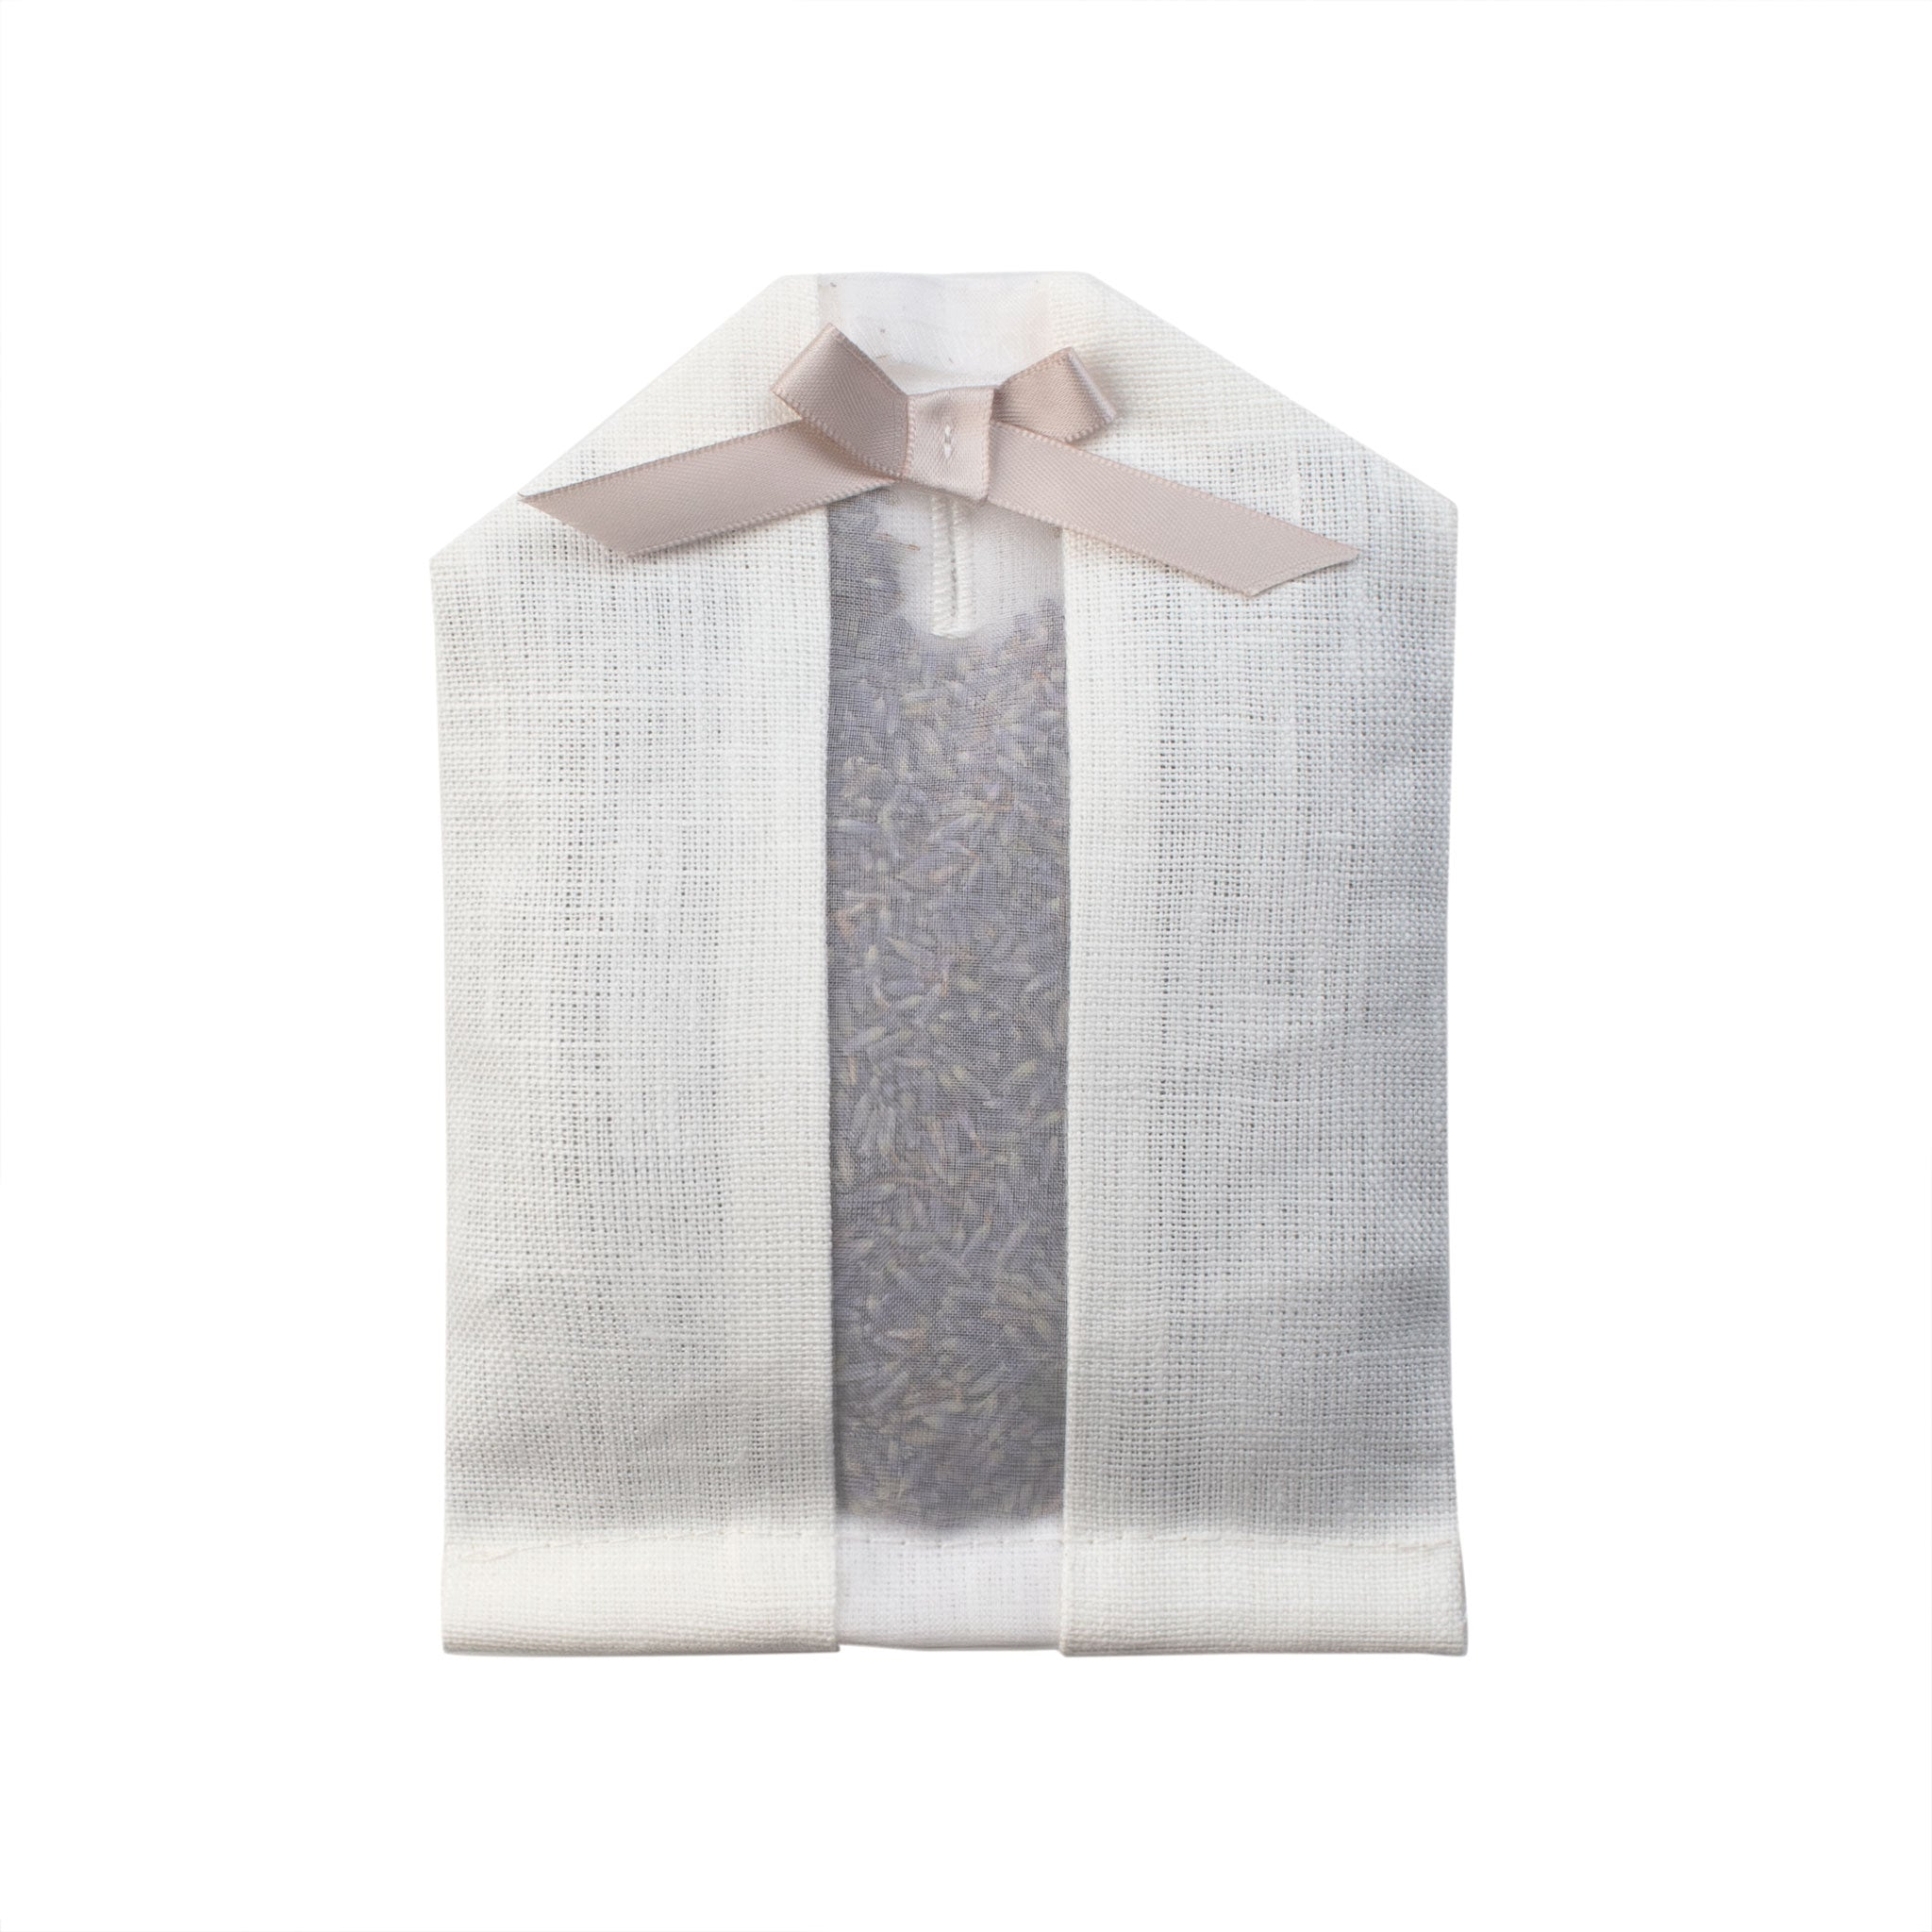 Lavender filled inside of an ivory linen hanger sachet